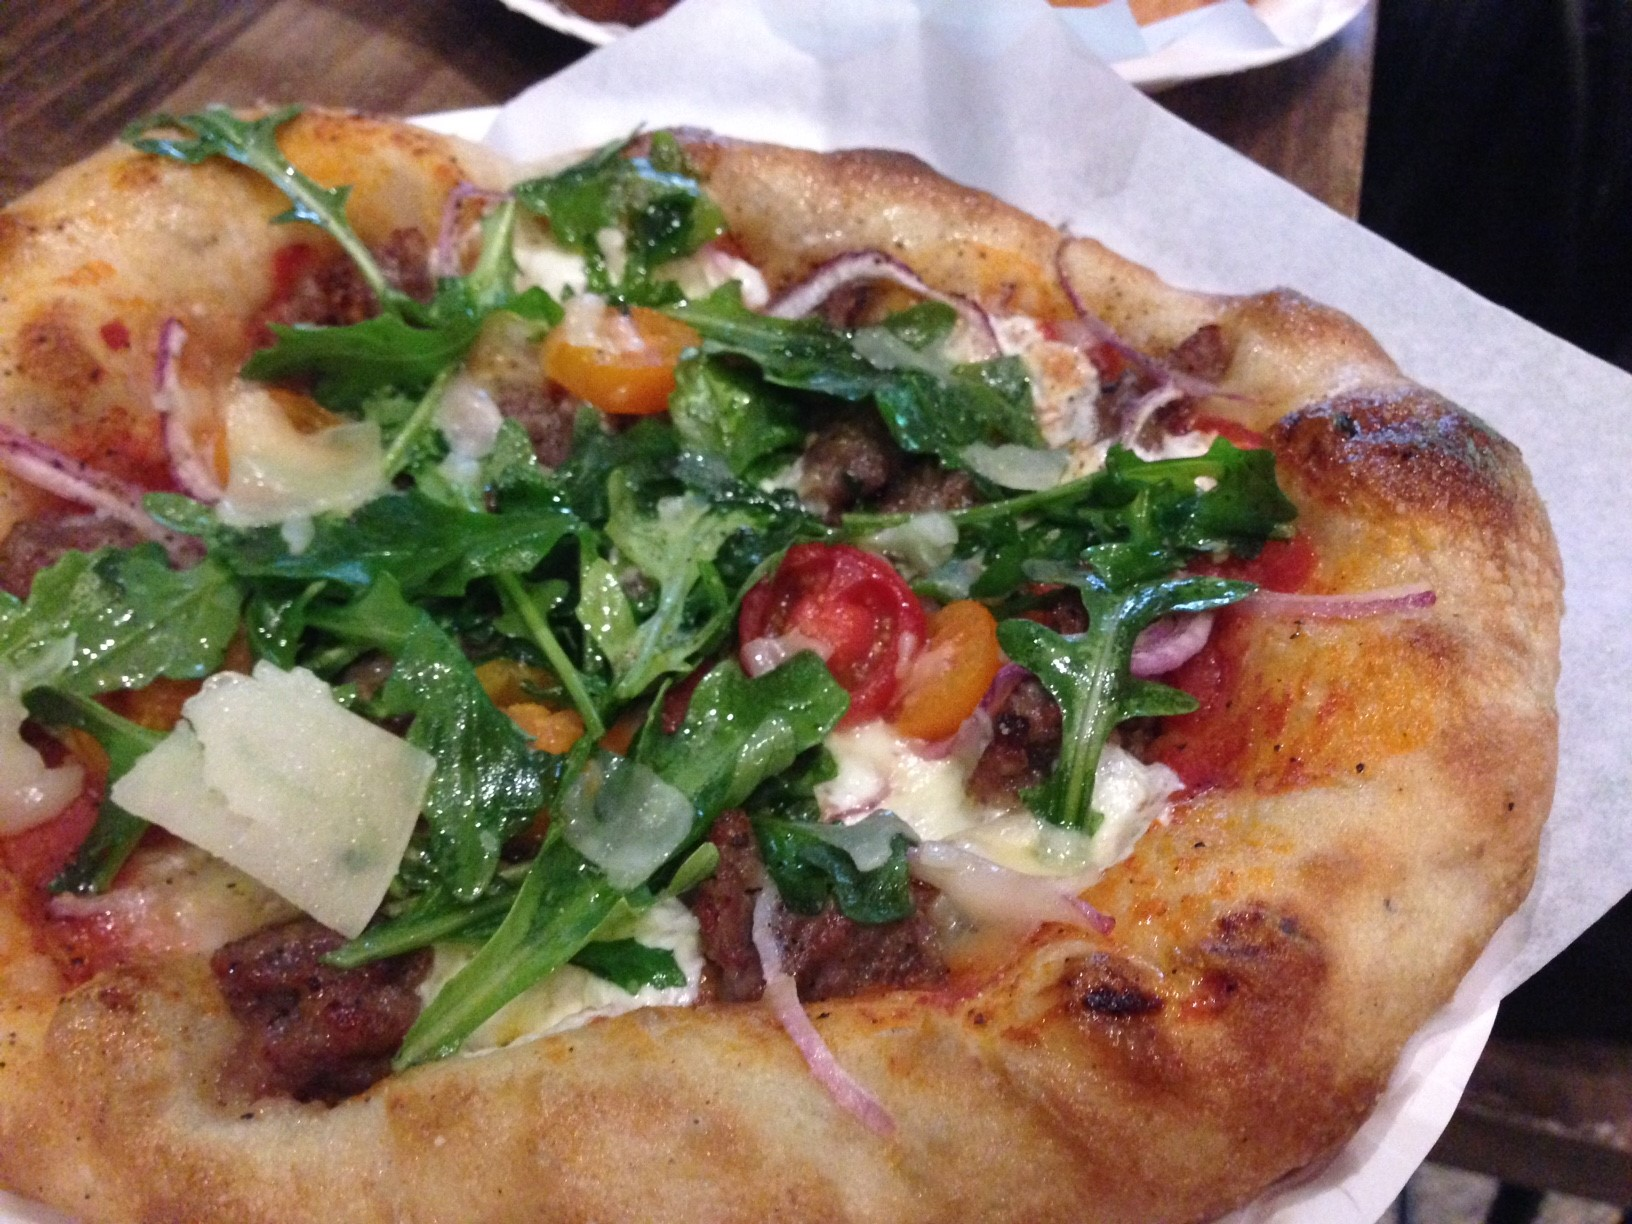 Pizza Arte Open Hours Conservatory Food Hall Welcomes New Vendors Houston Chronicle